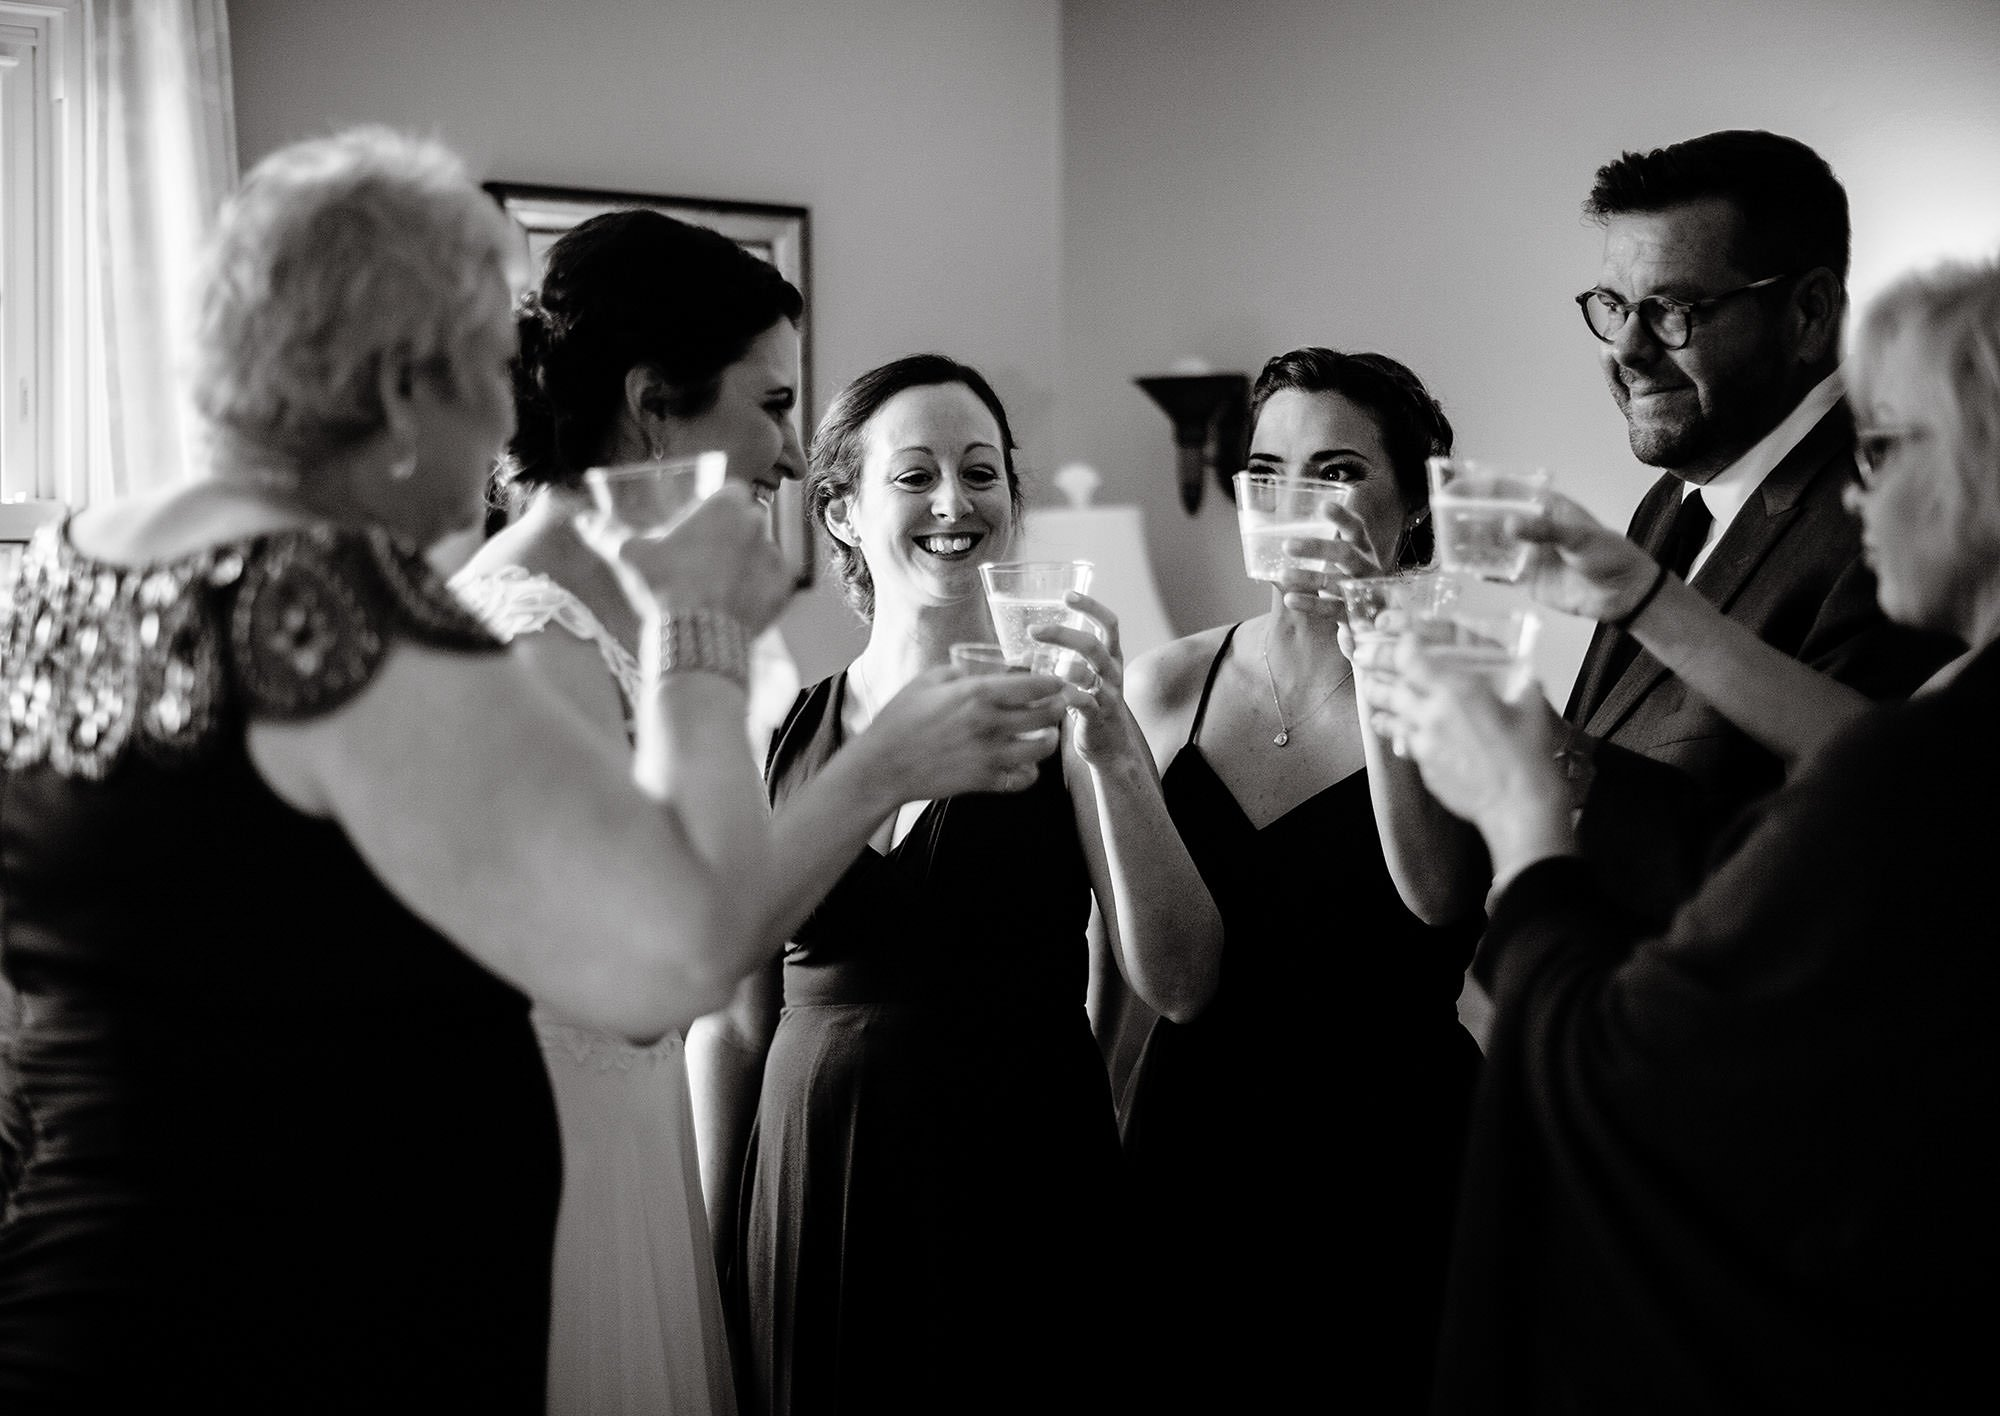 The bridal party gives a toast prior to the wedding ceremony at Pelham House Resort.